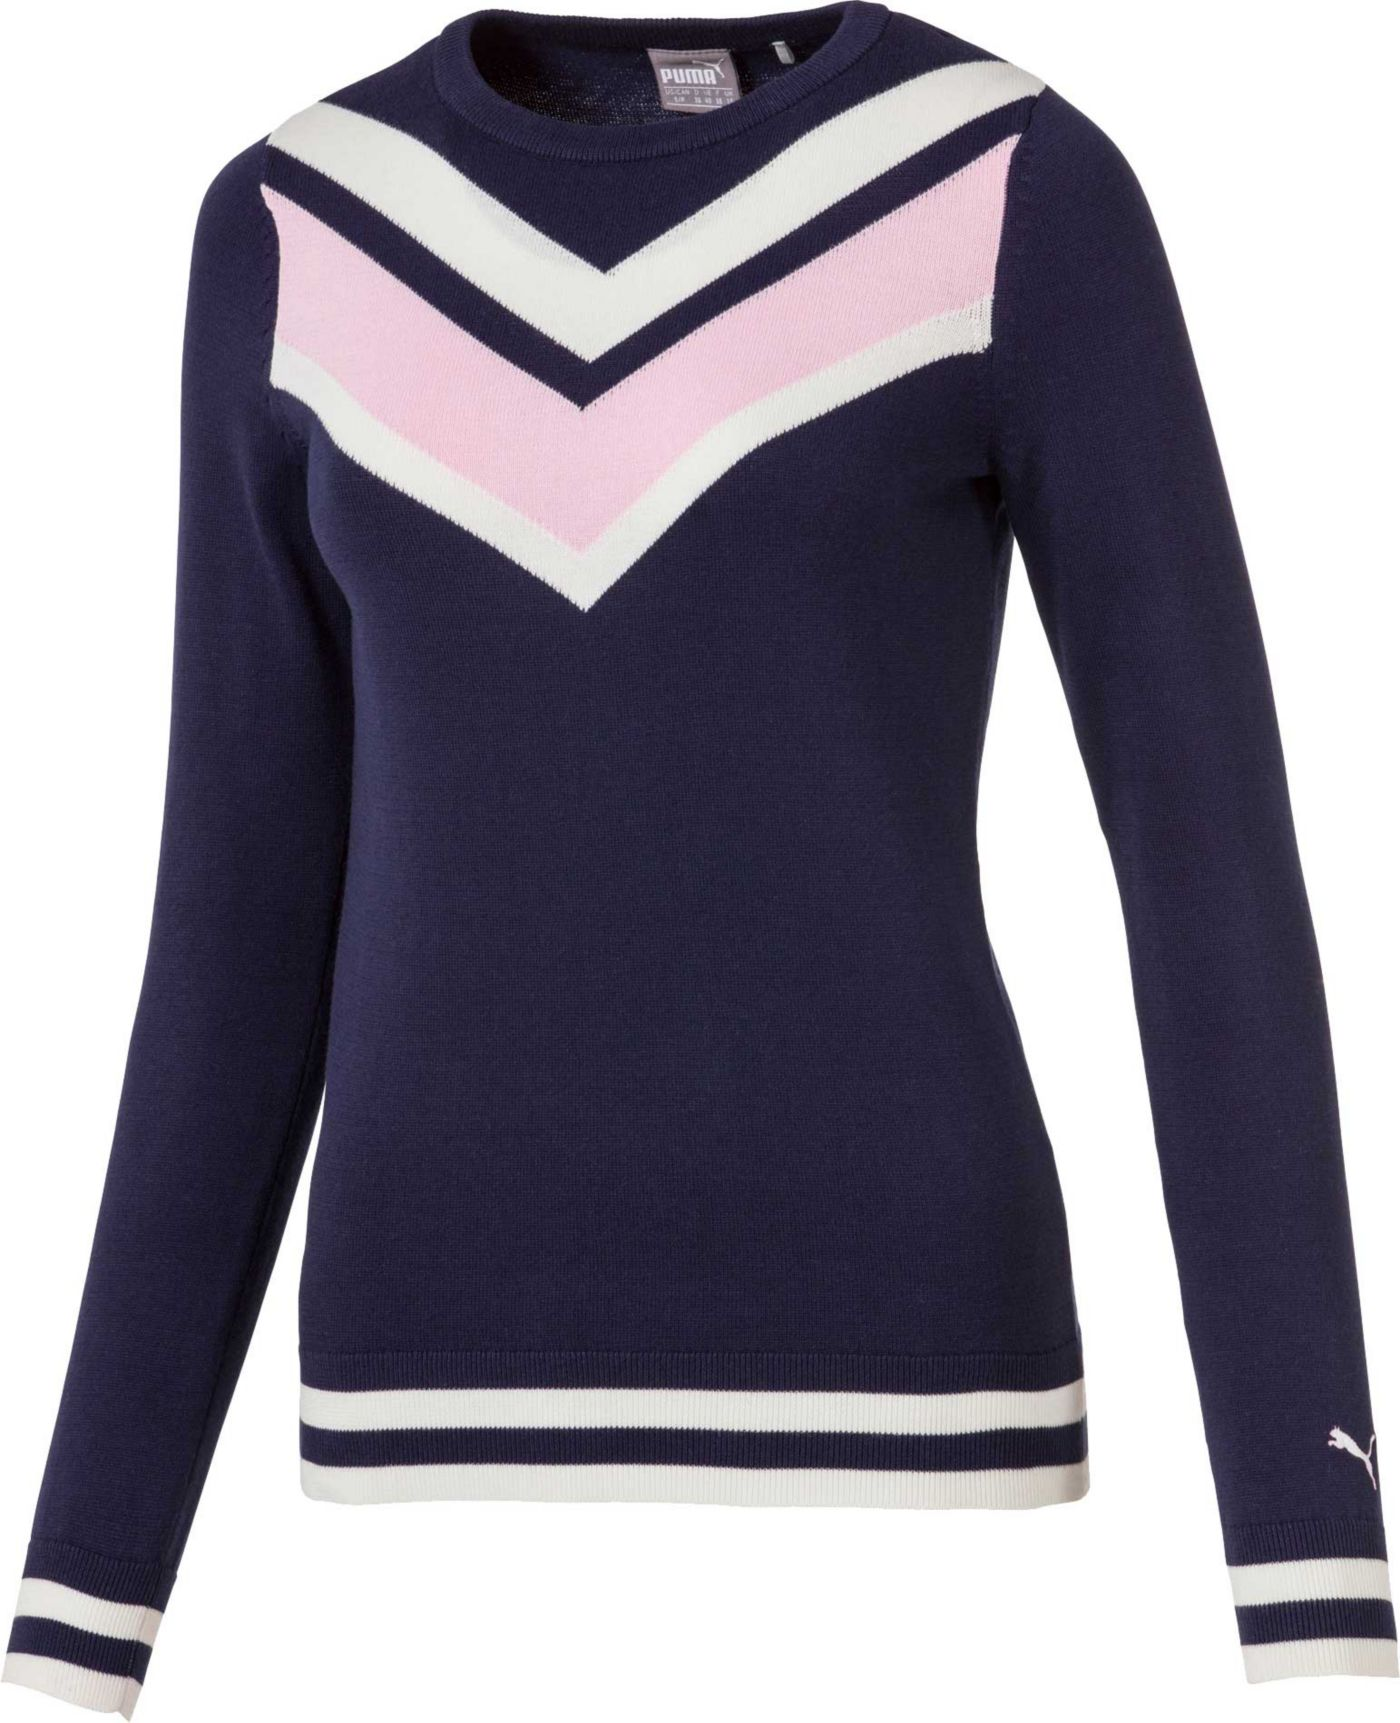 PUMA Women's Chevron Golf Sweater